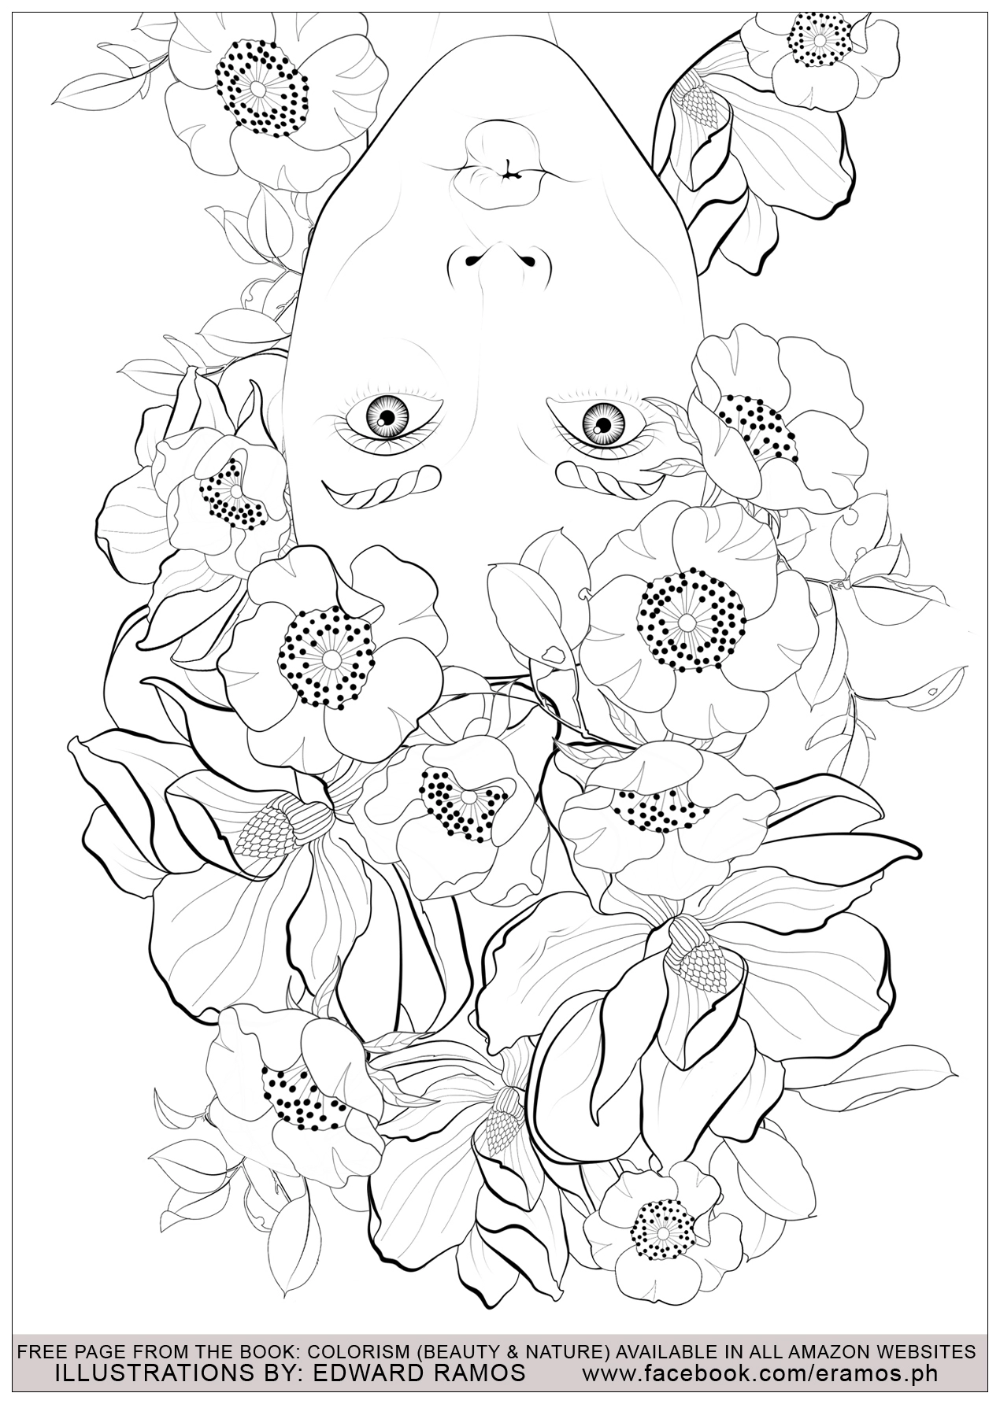 Illustration From The Book Colorism Beauty Nature By Edward Ramos 9 Cute Coloring Pages Antistress Coloring Coloring Pages Nature